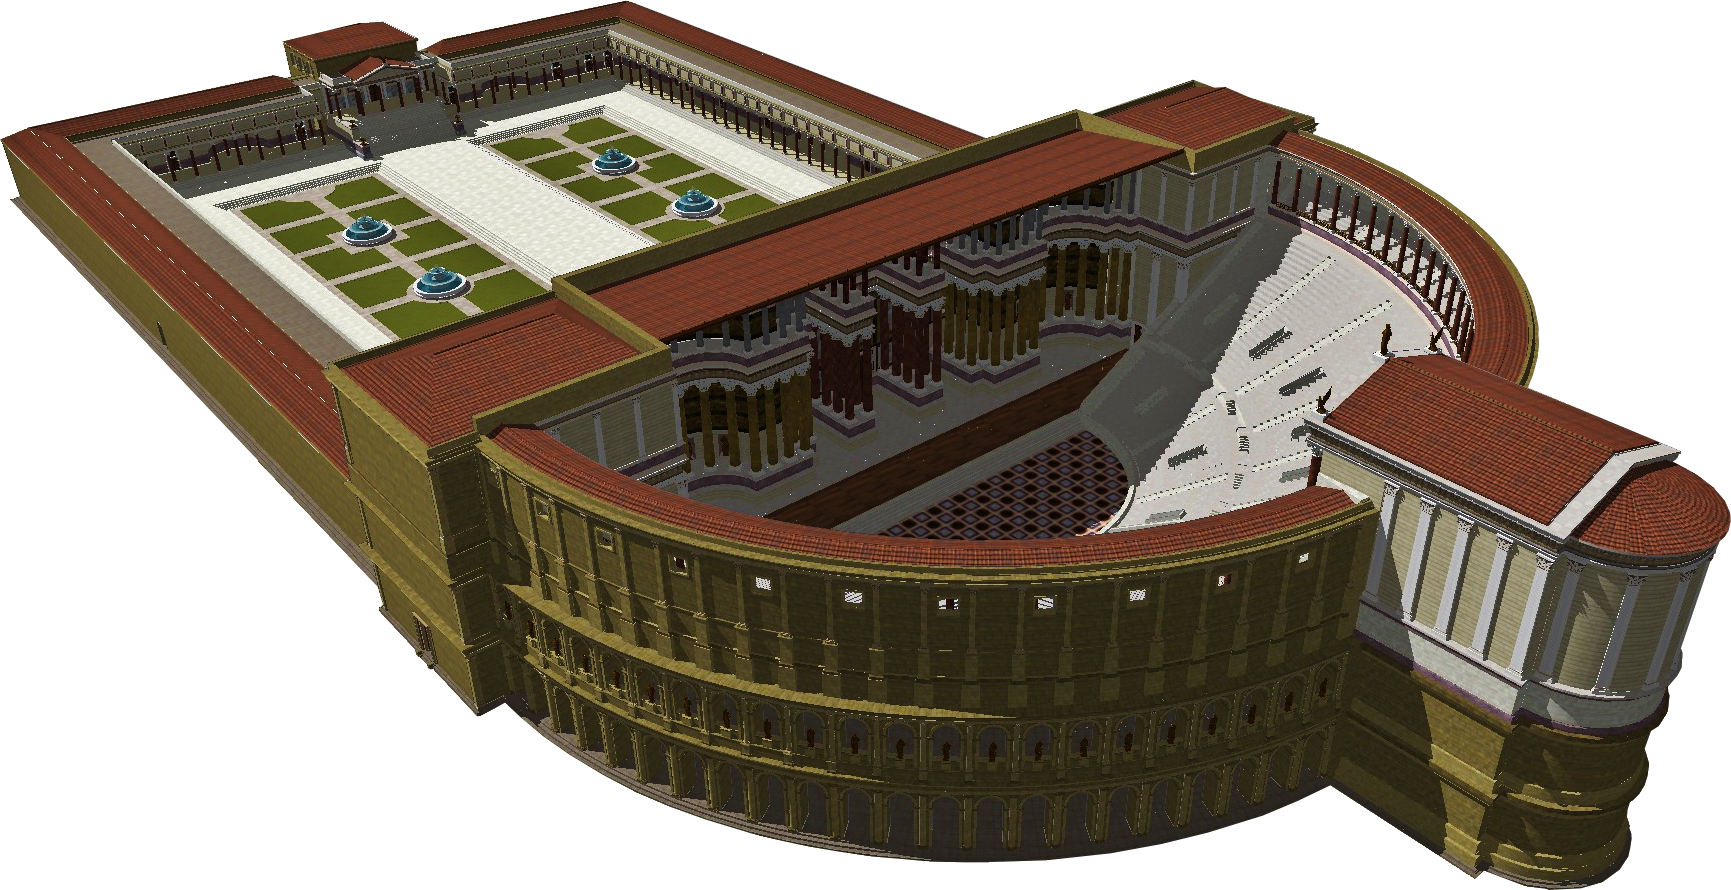 Theater of pompey Theatre_of_Pompey_3D_cut_out.png